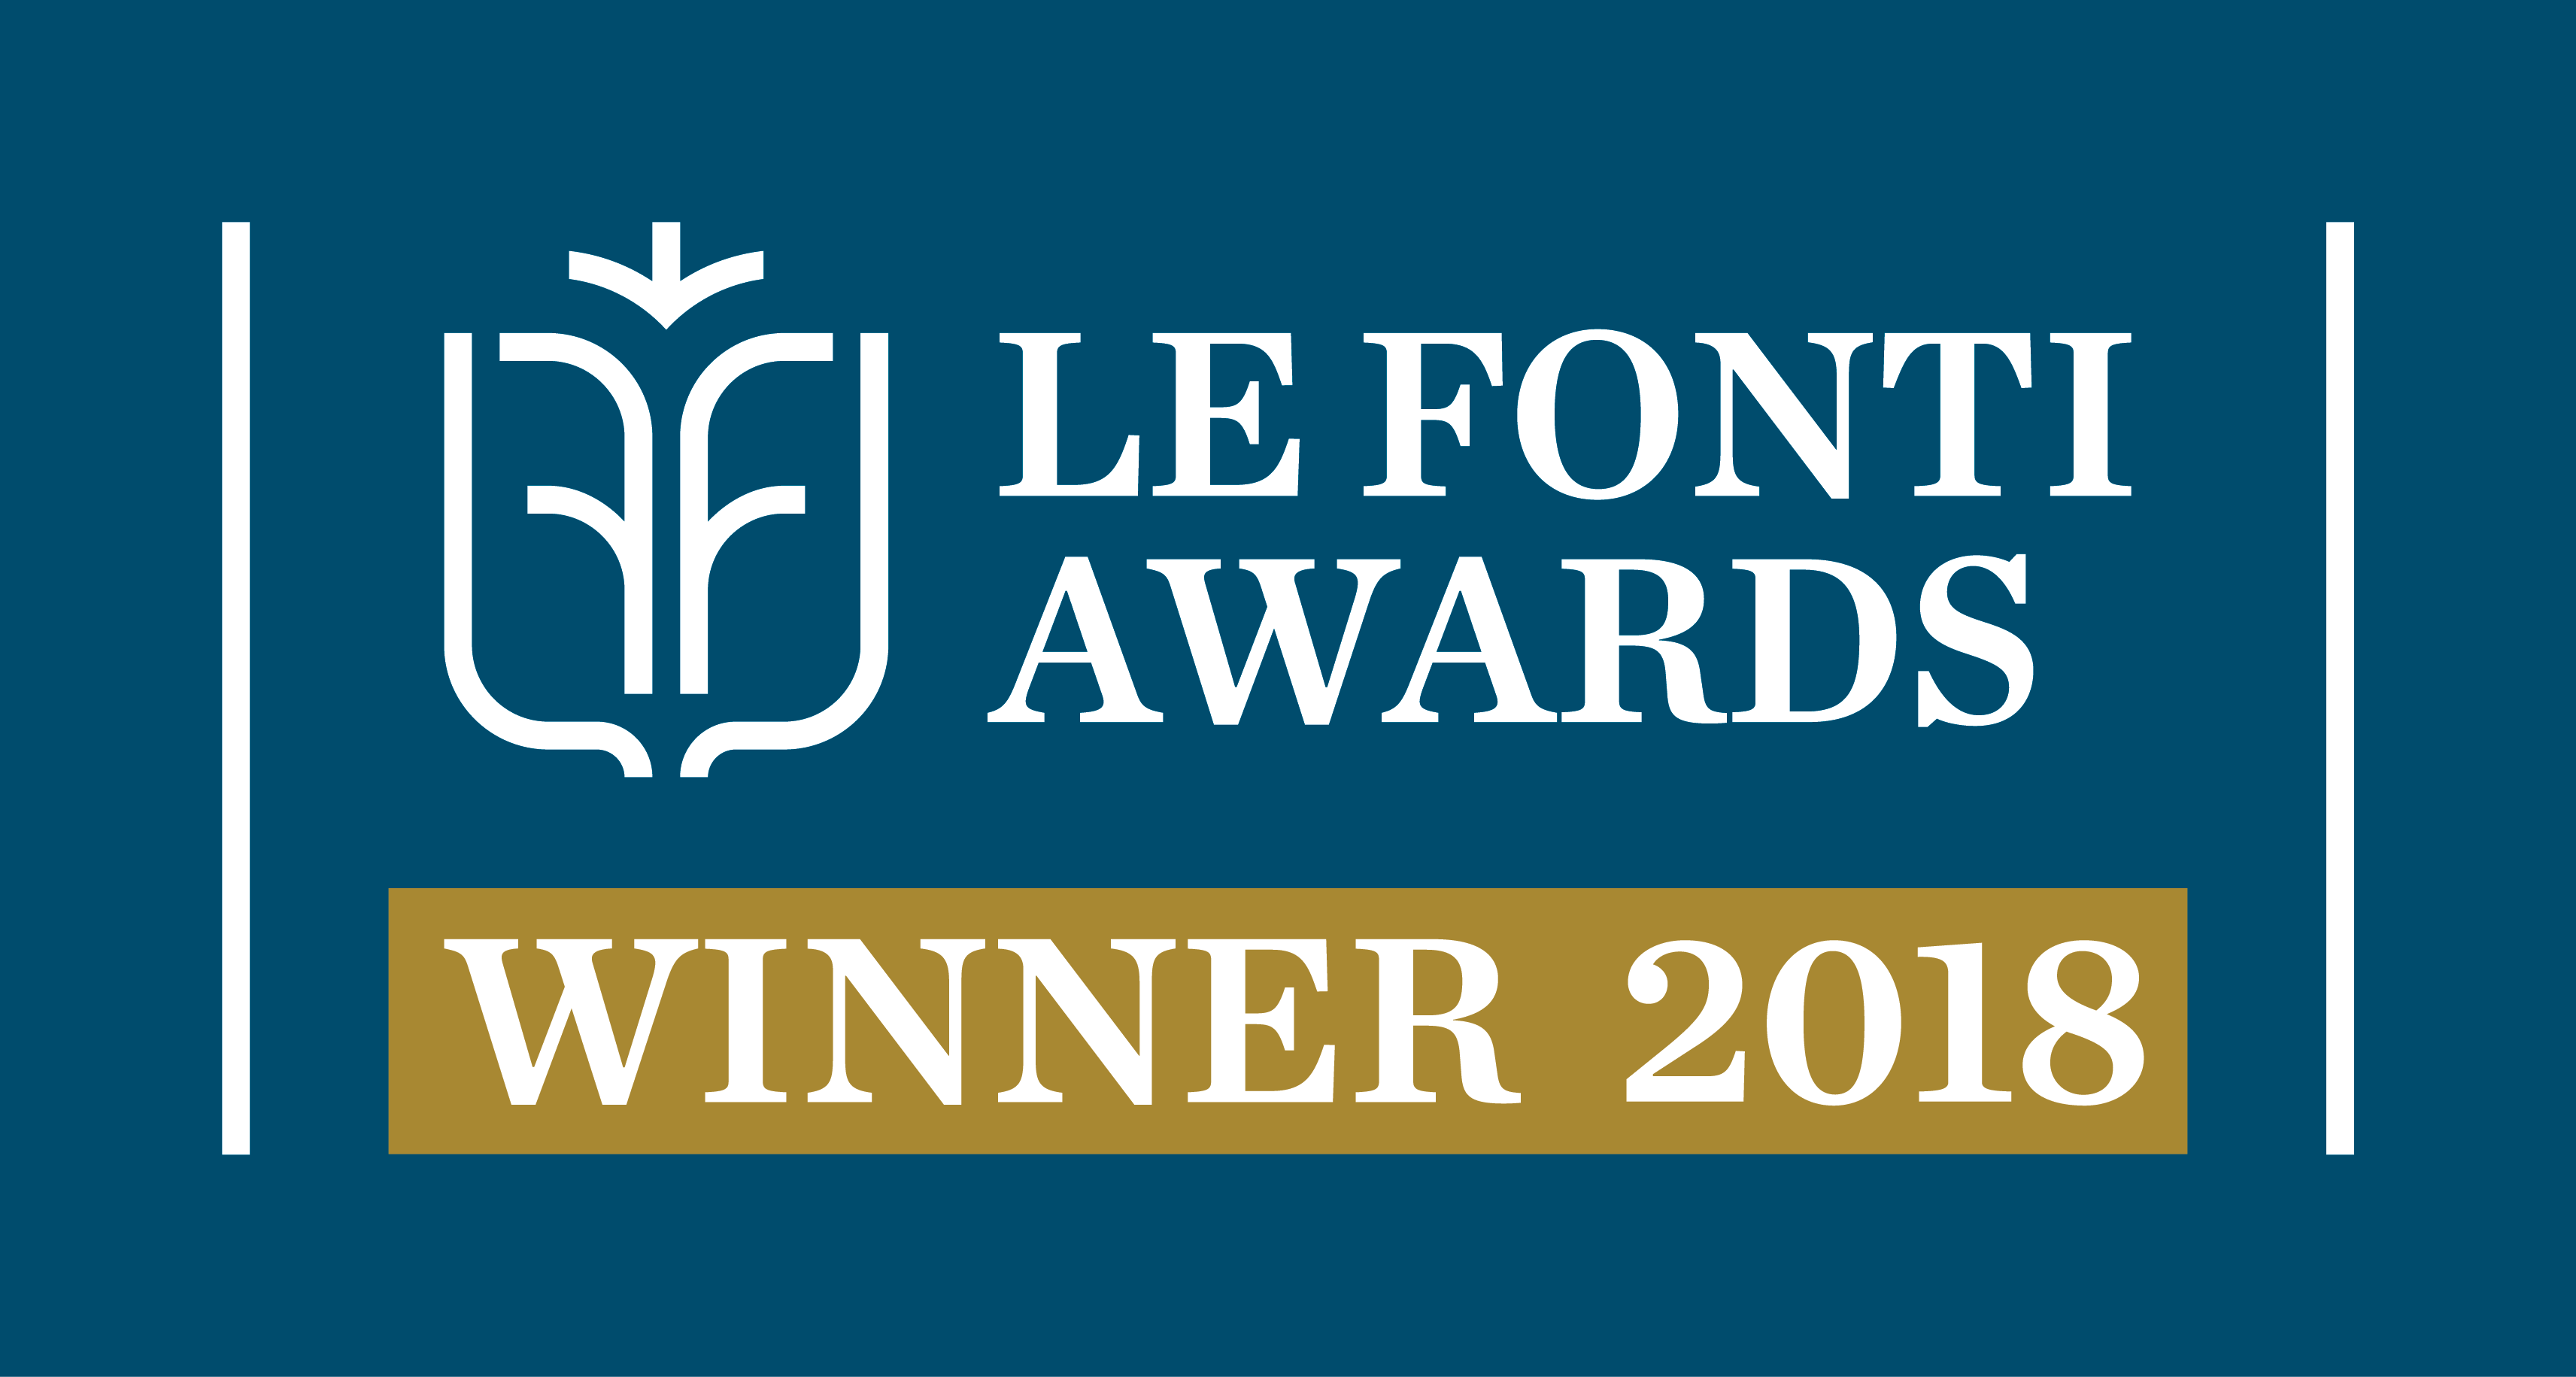 Le Fonti Awards Winner 2018